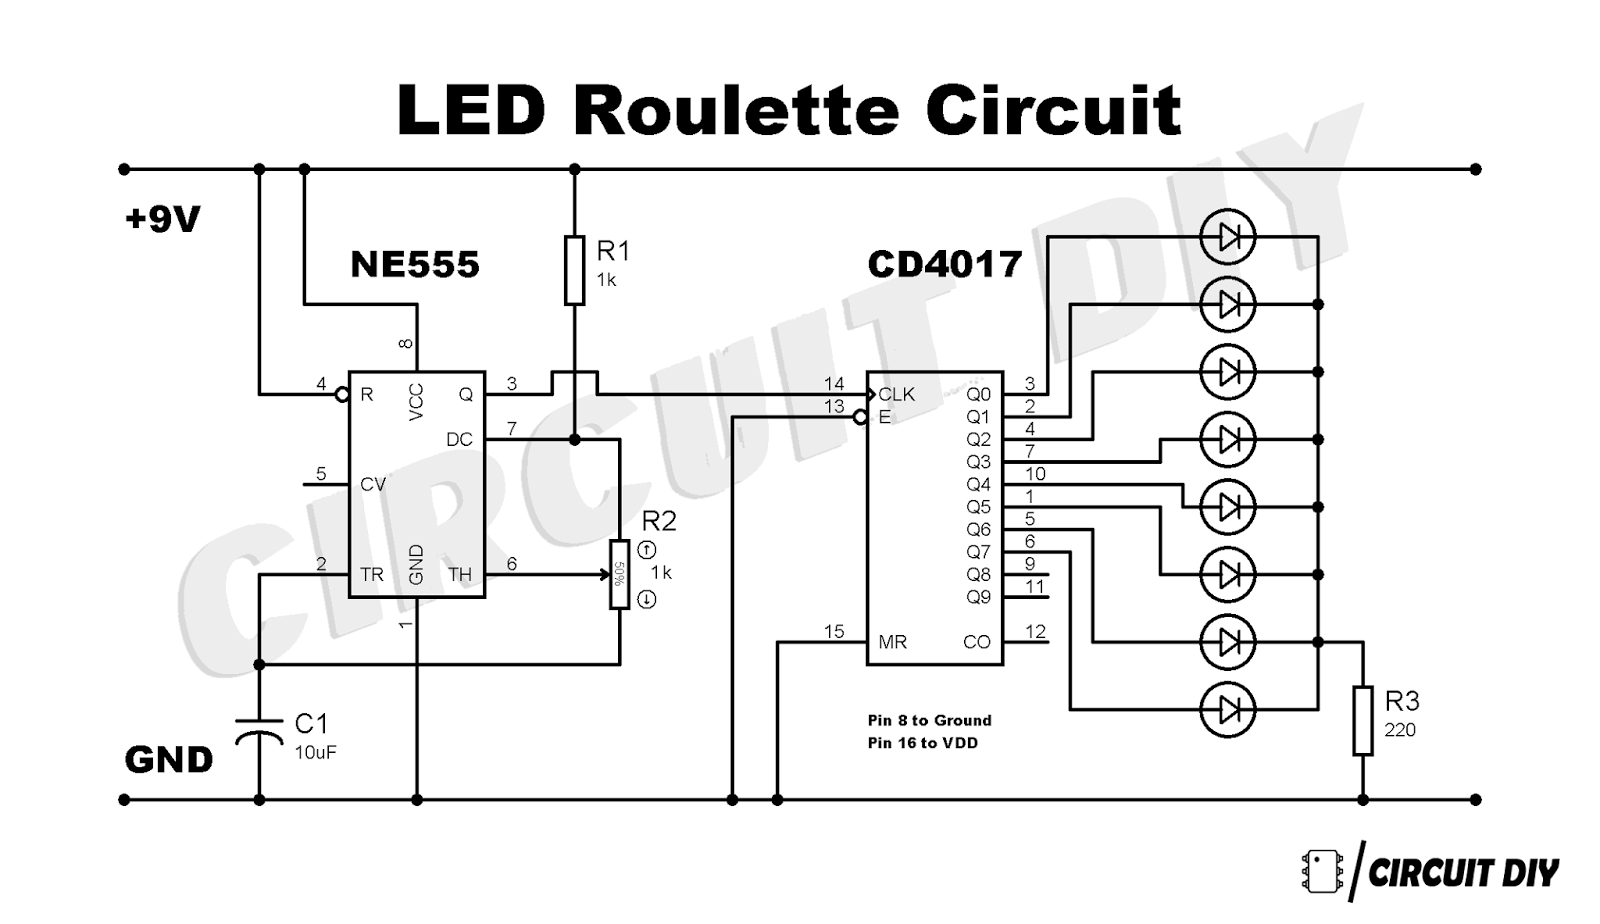 Led Roulette Circuit Diy How To Make Mp3 Player At Home Chaser Using 555 Timer Cd4017 Decade Counter Ic 4017